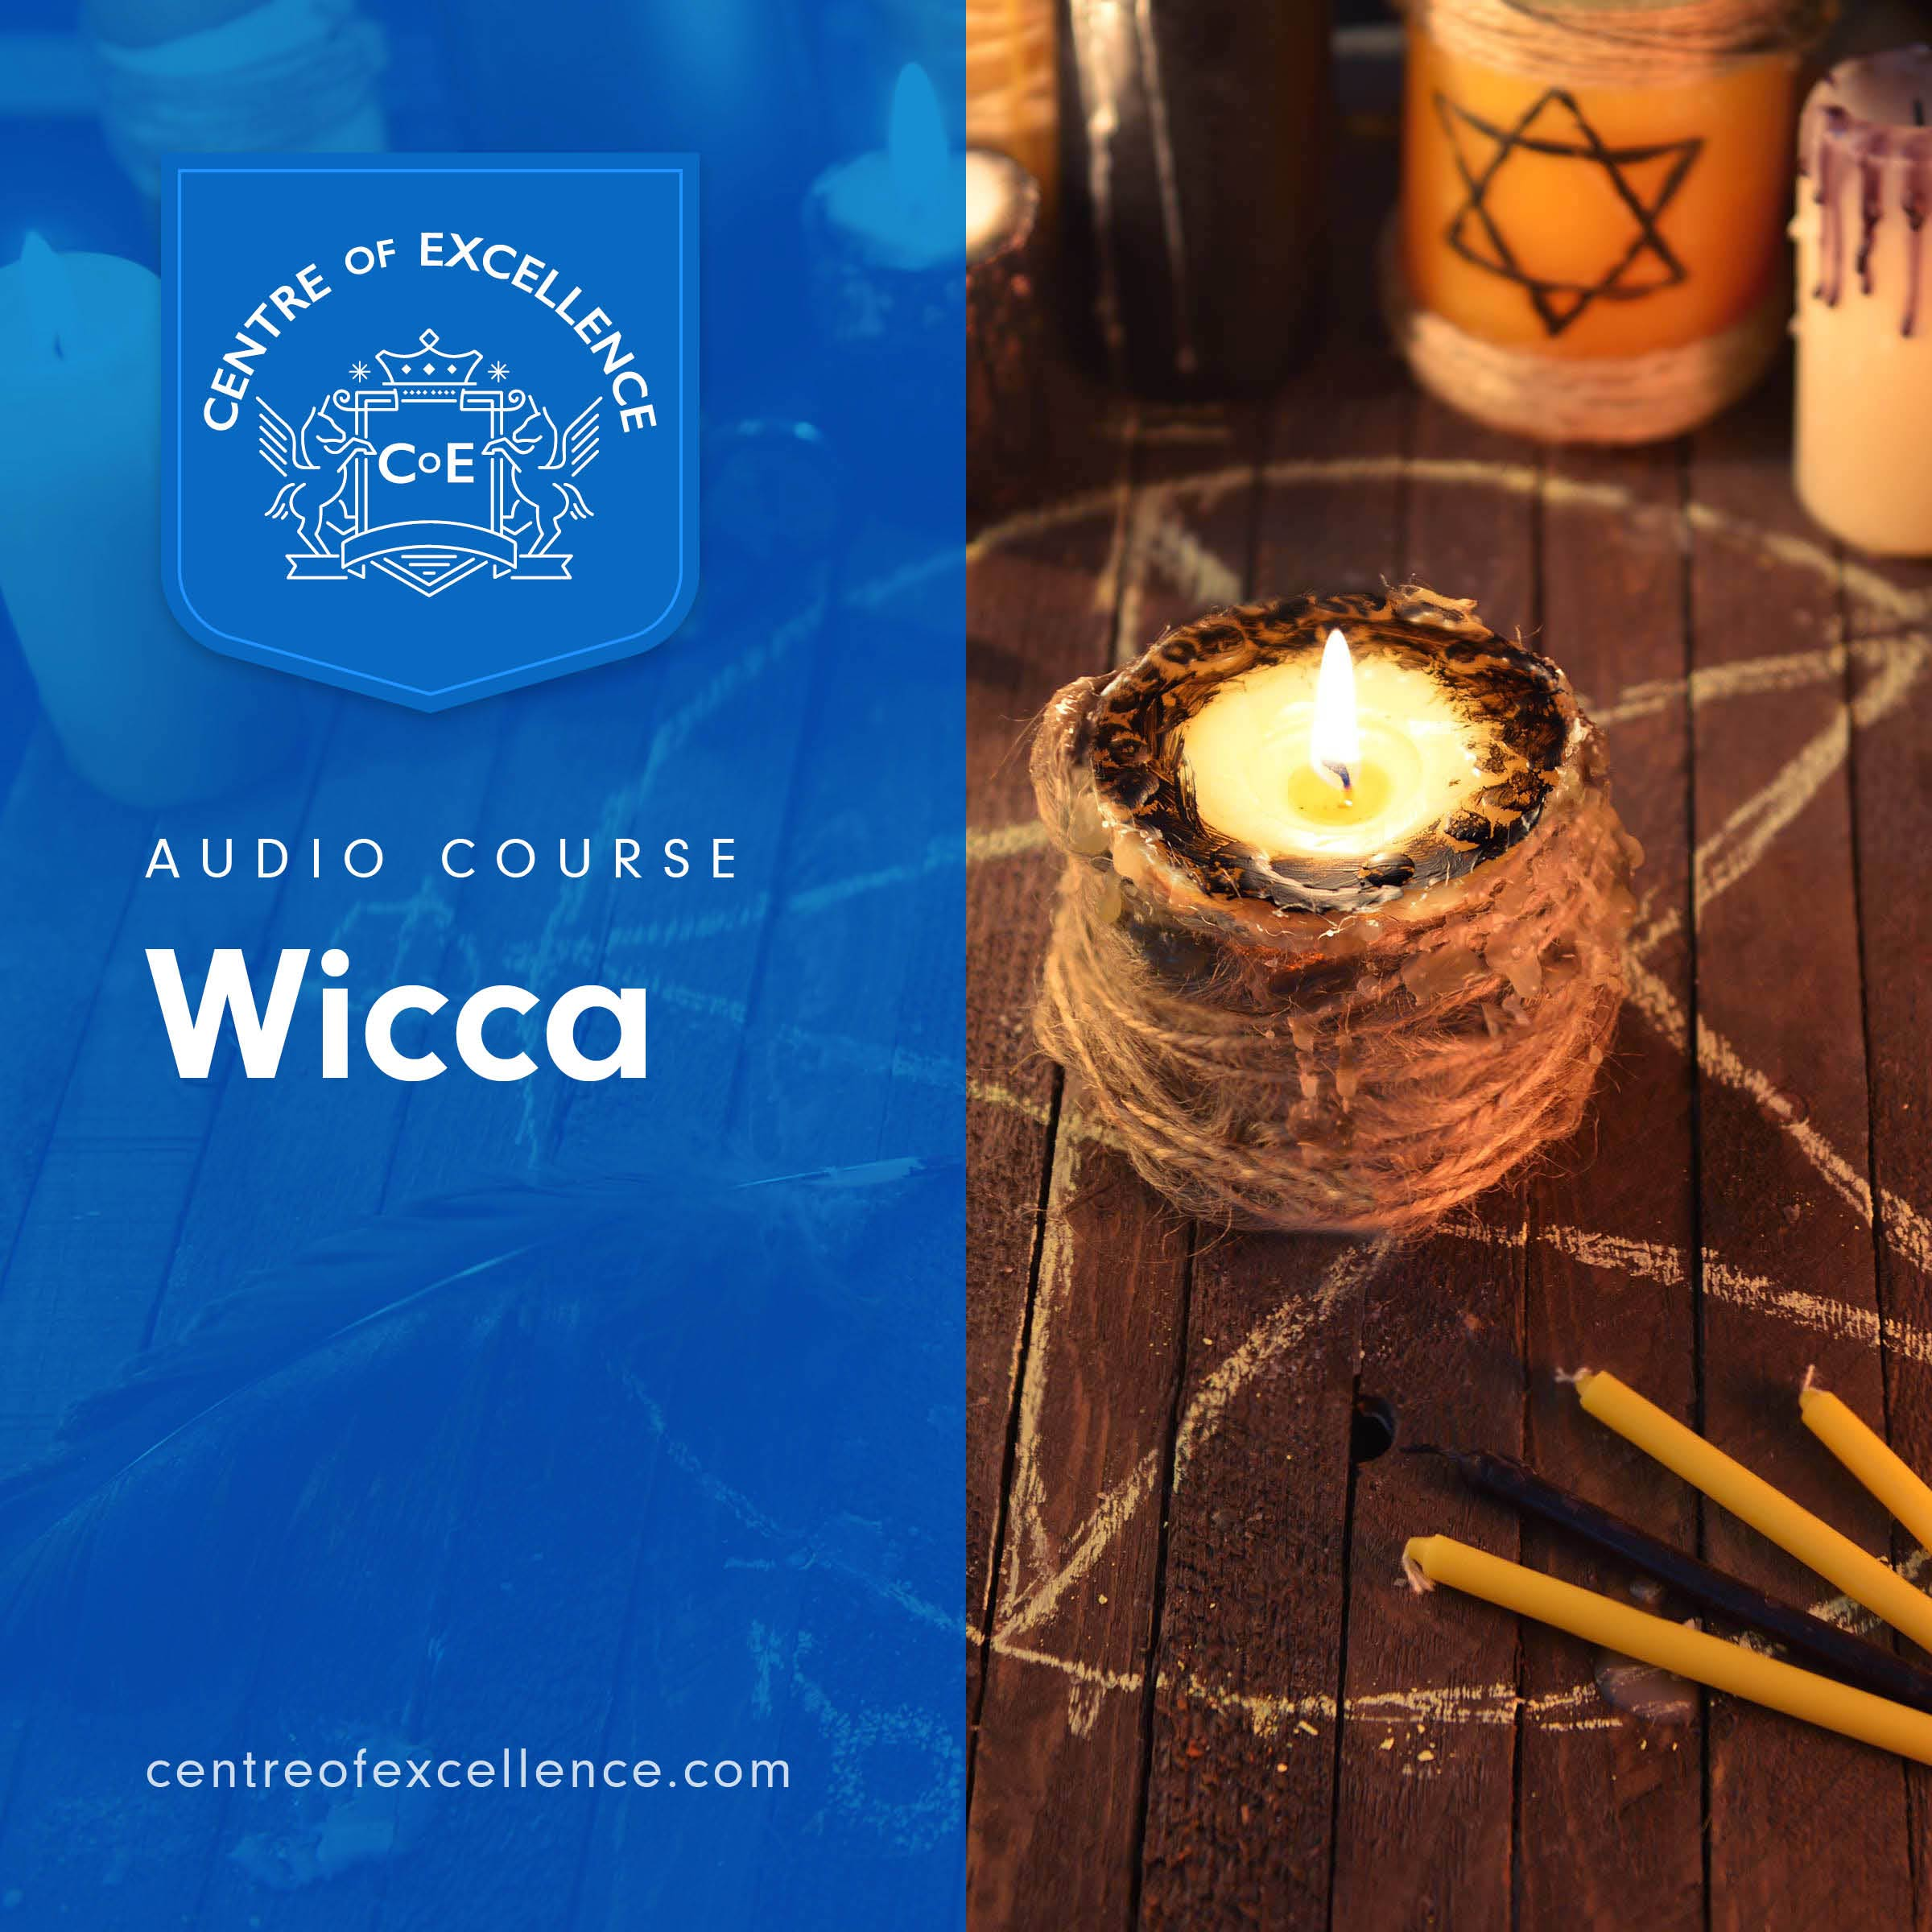 Wicca Audio Course